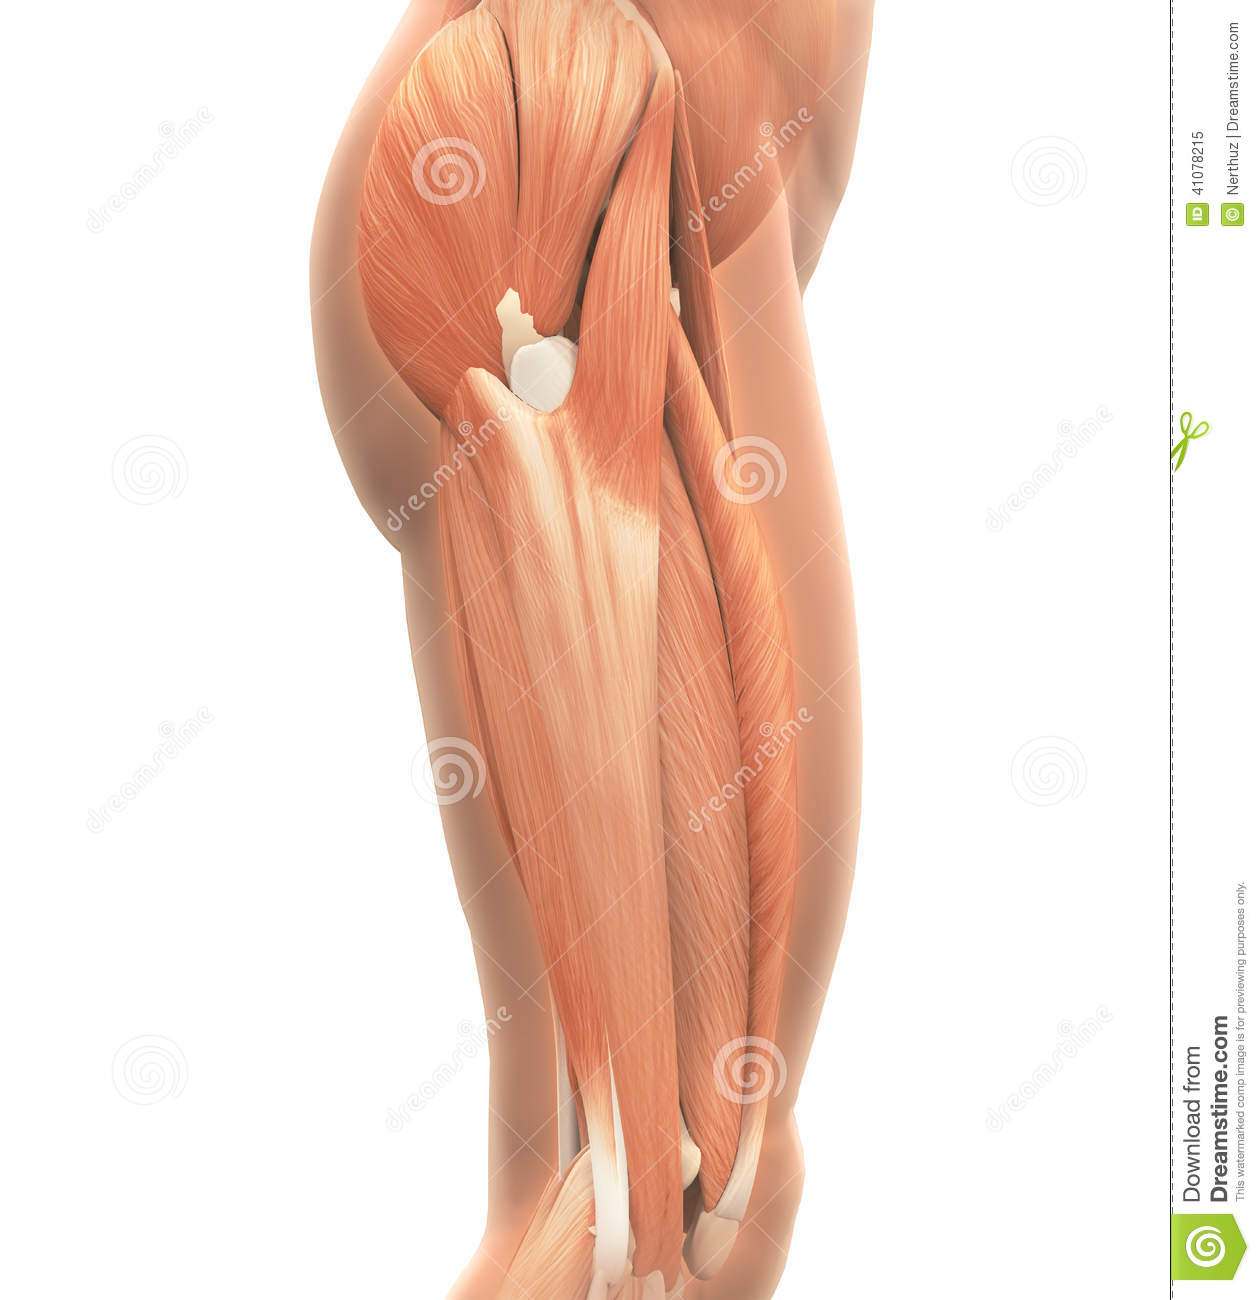 Upper Legs Muscles Anatomy stock illustration. Illustration of ...